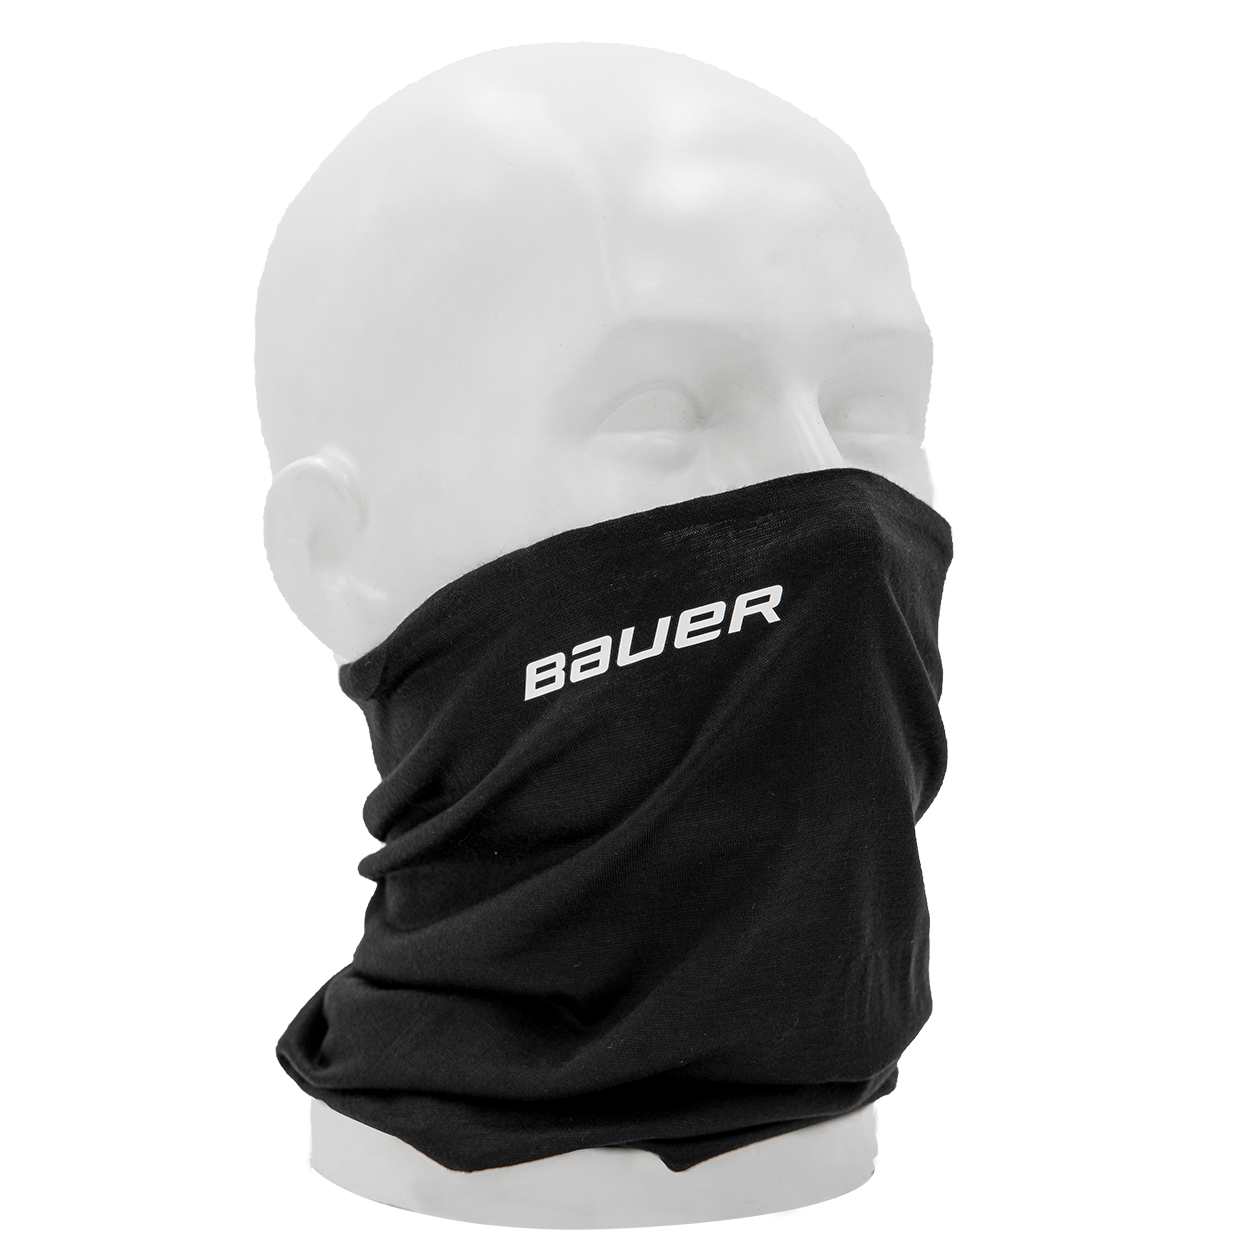 Bauer Reversible Gaiter,Black/Camo,medium